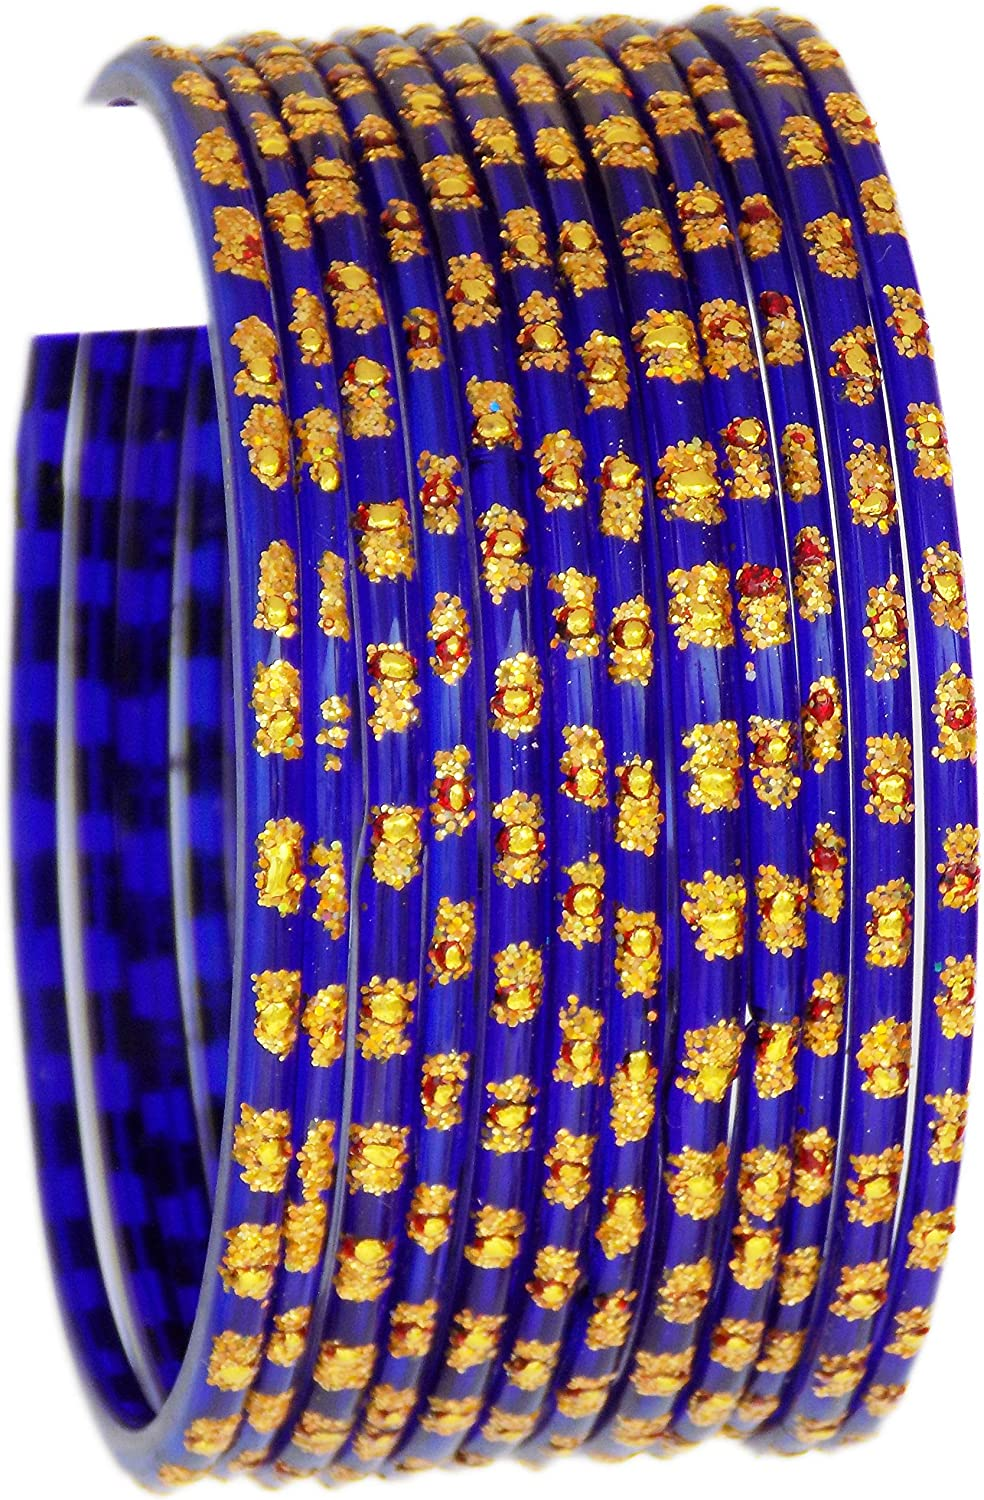 JD'Z COLLECTION Glass Bangles for Women & Girls Indian Traditional Jewelry Glass Bangles Set Set for Ethnic Daily Wear, Bridal Bangles for Indian Marriage (Set of 12) - Blue